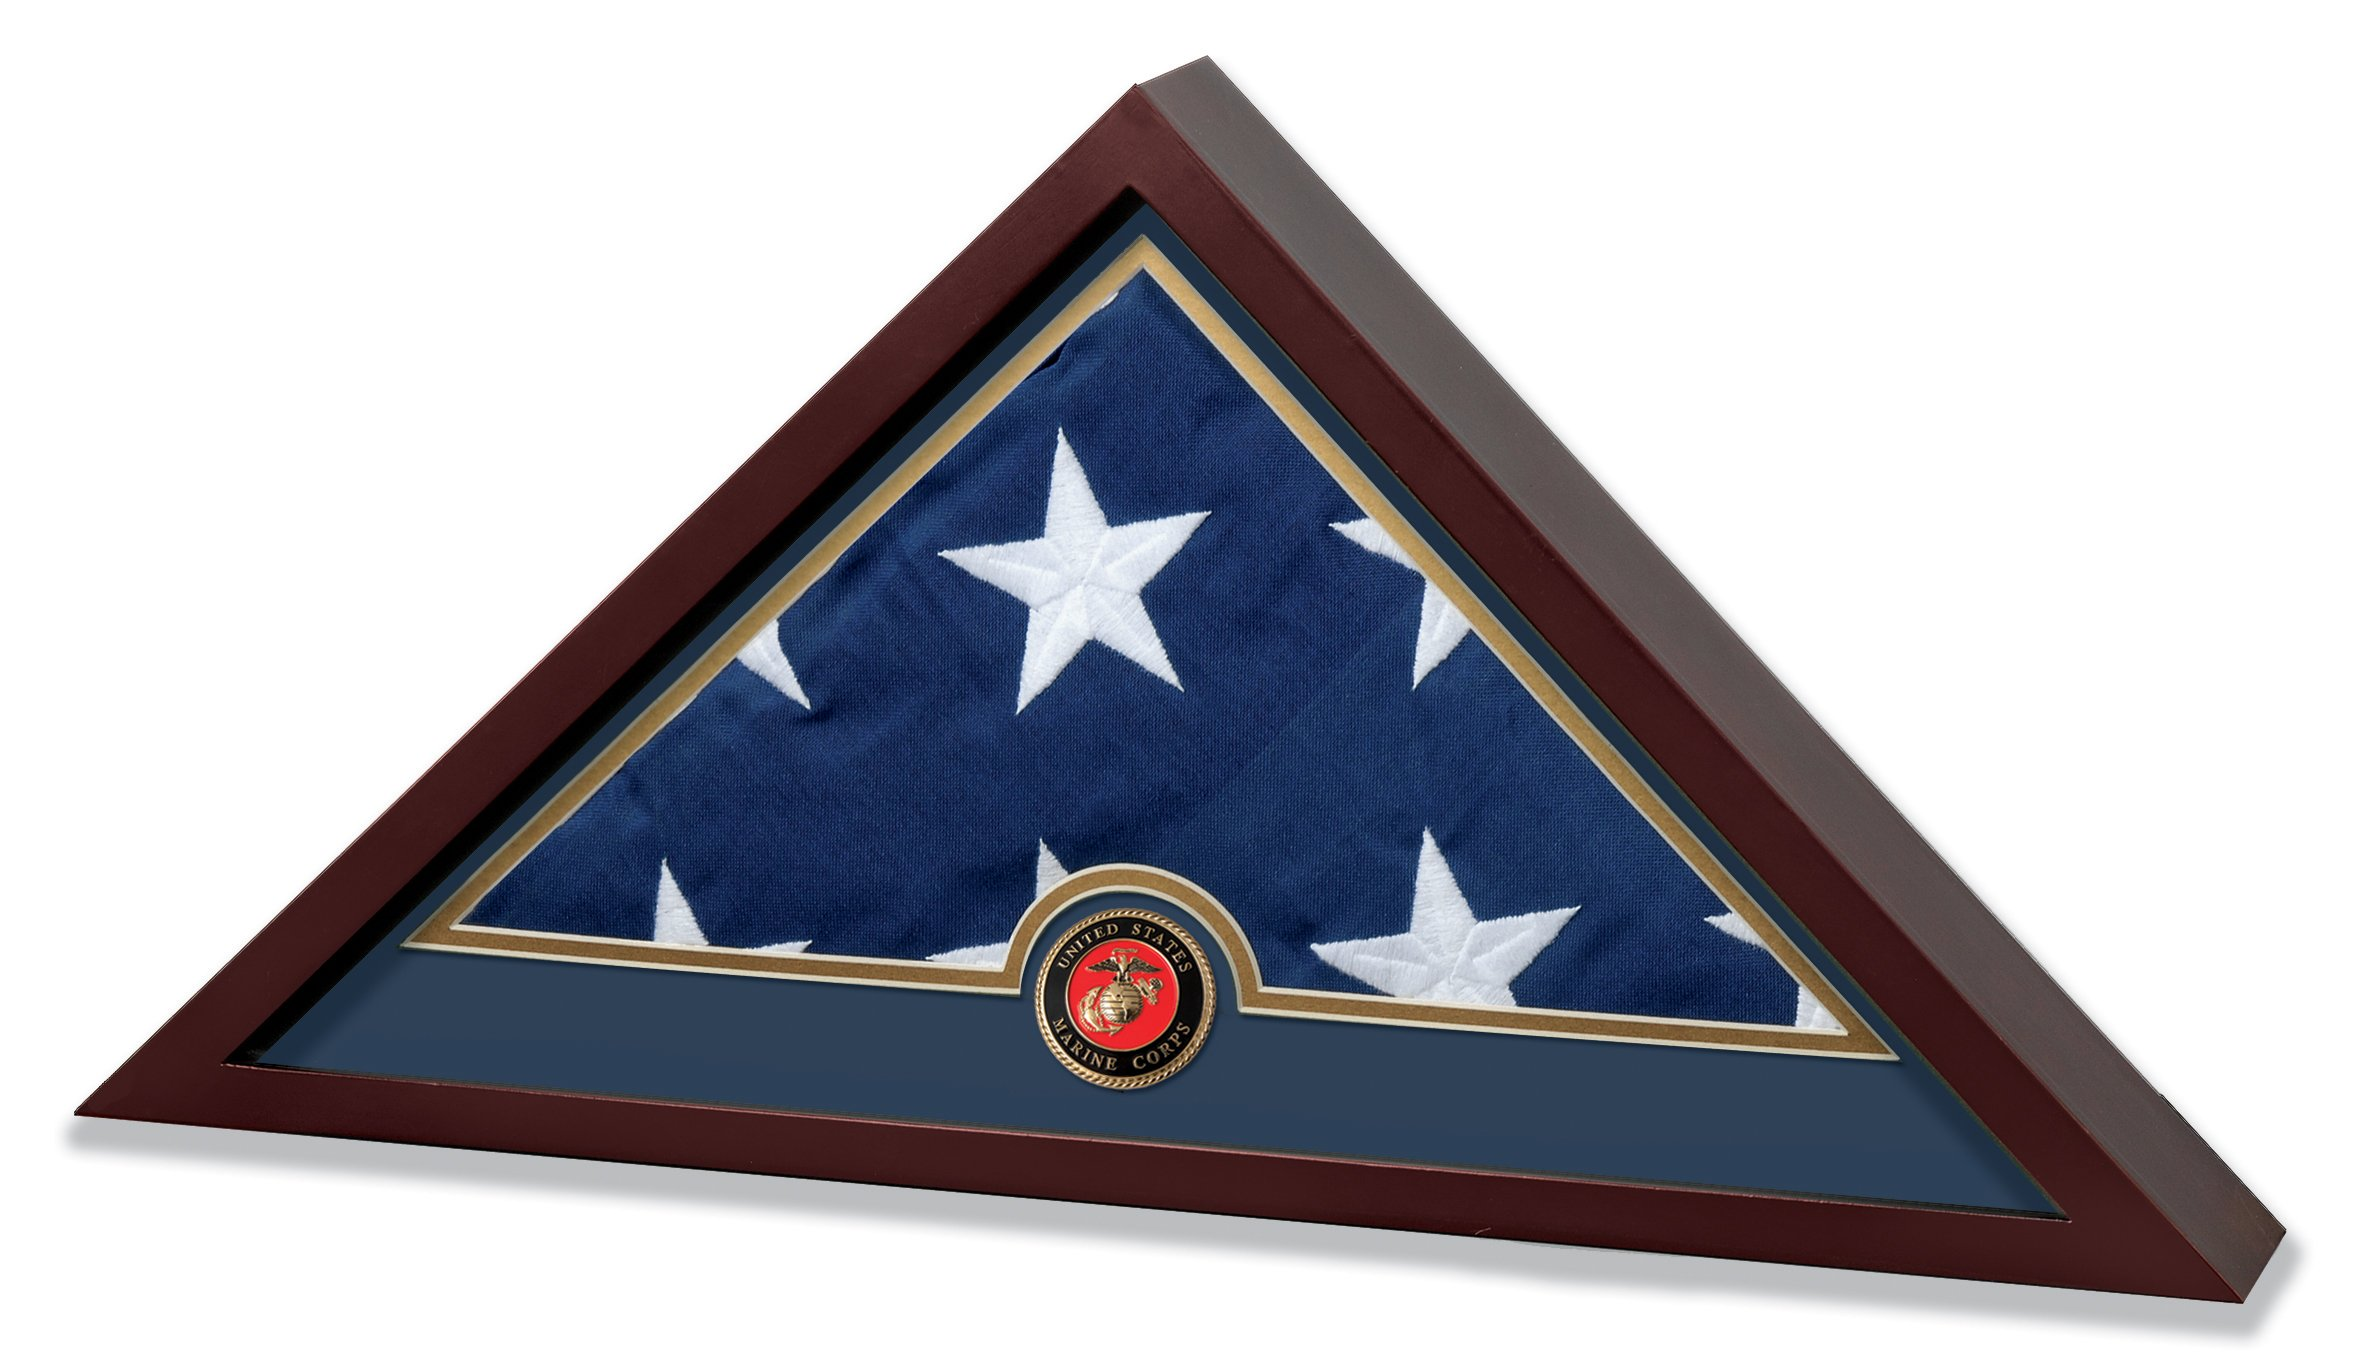 Allied Frame US Marine Corps Internment American Burial Flag Display Case with Official Marine Corps Medallion and US Internment Flag